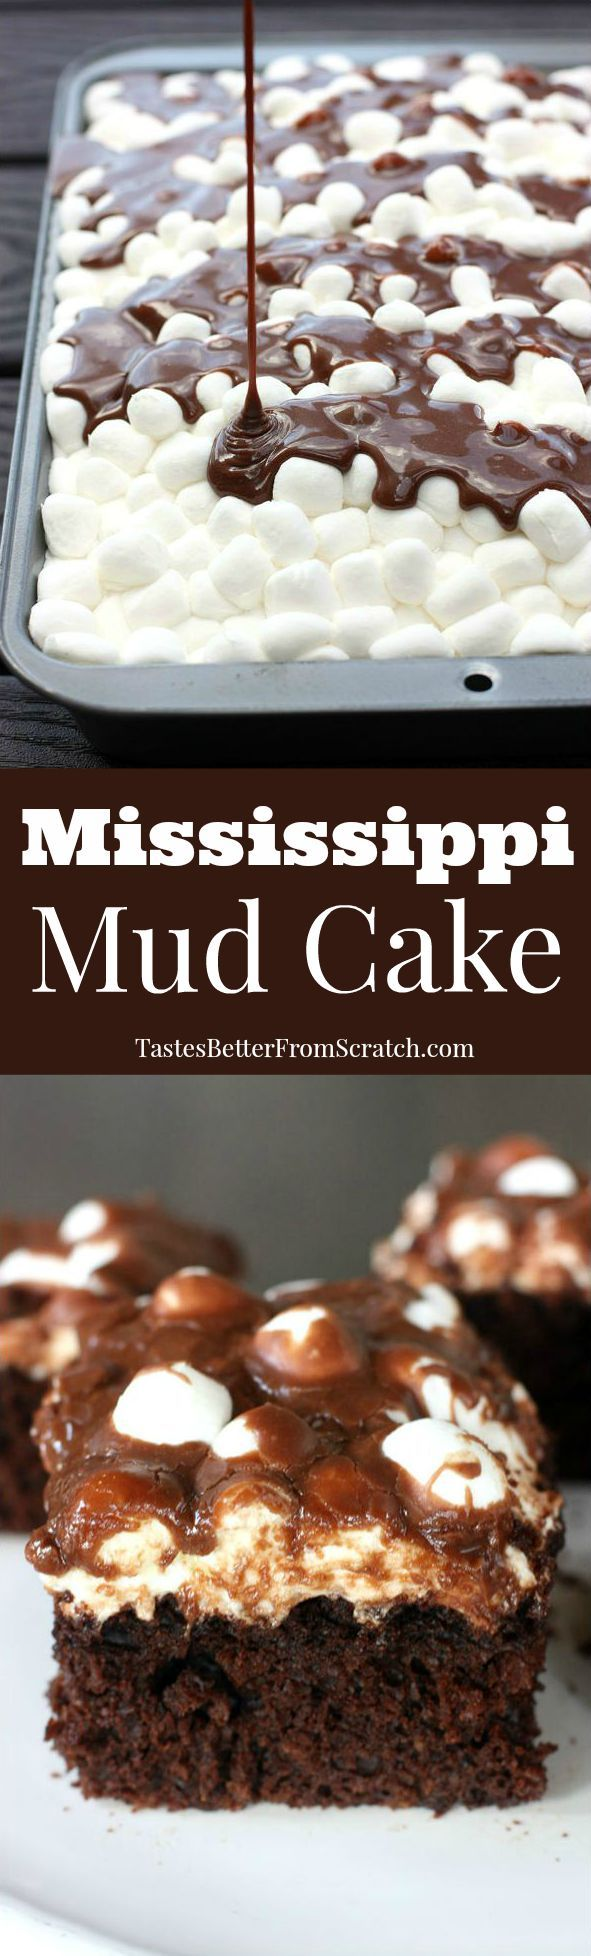 Mississippi Mud Cake--homemade chocolate cake with marshmallows and warm chocolate frosting poured on top! BEST CAKE EVER!: